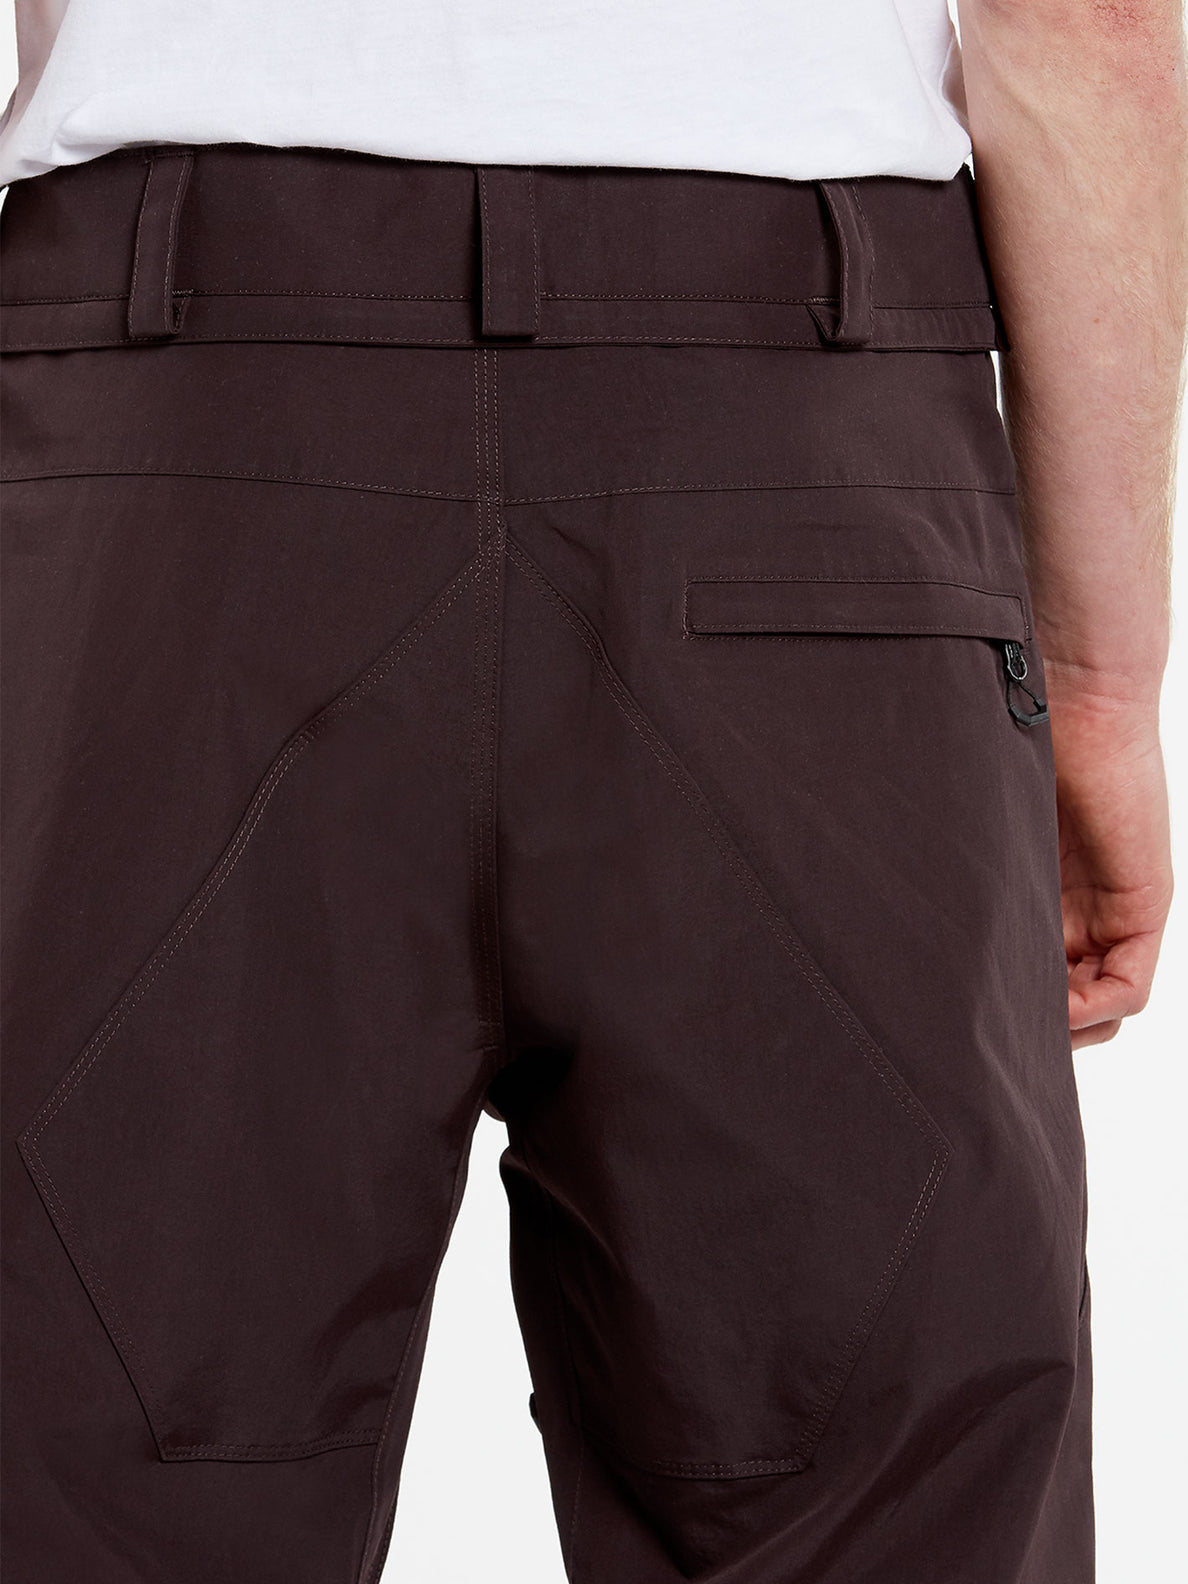 L GORE-TEX PANT - RED (G1351904_RED) [02]